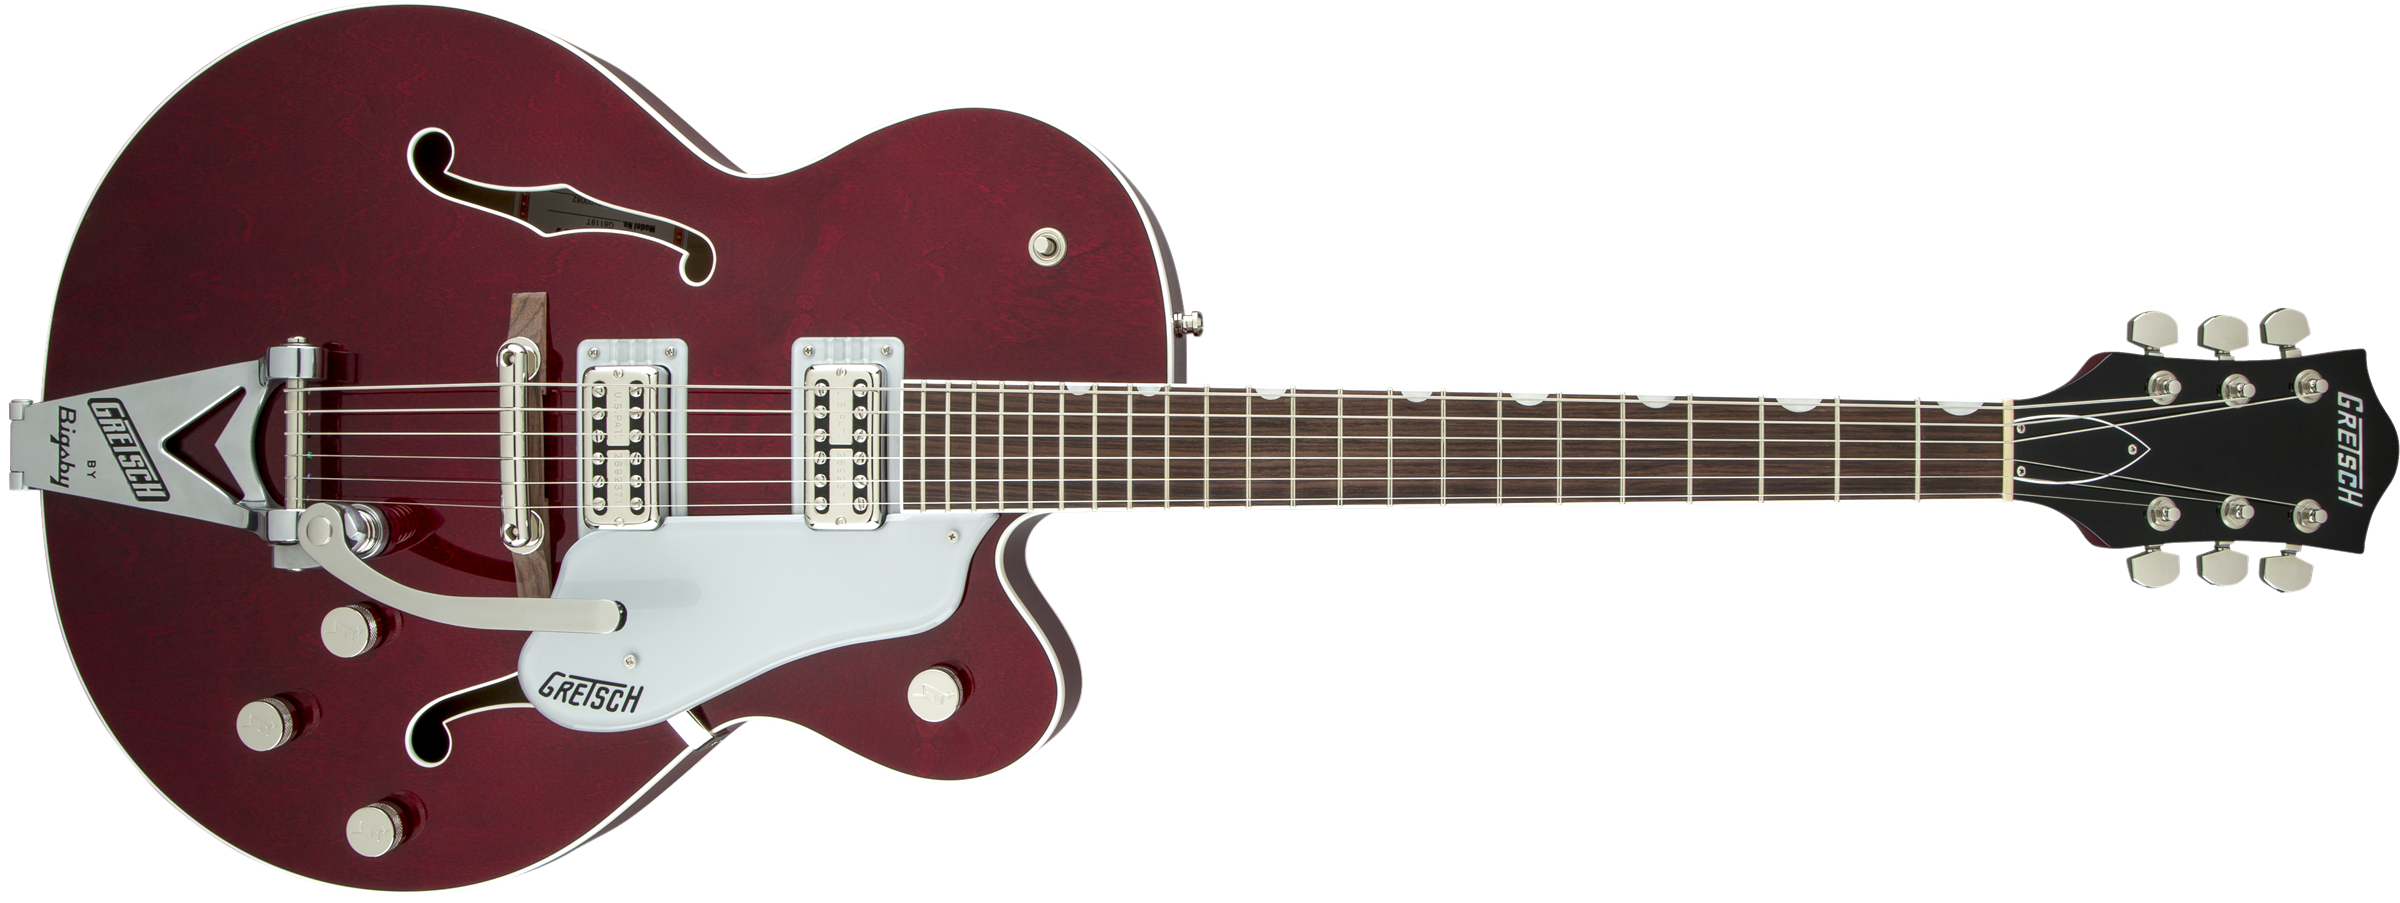 GRETSCH-G6119T-Players-Edition-Tennessee-Rose-with-String-Thru-Bigsby-FilterTron-Pickups-Dark-Cherry-Stain-sku-571001000